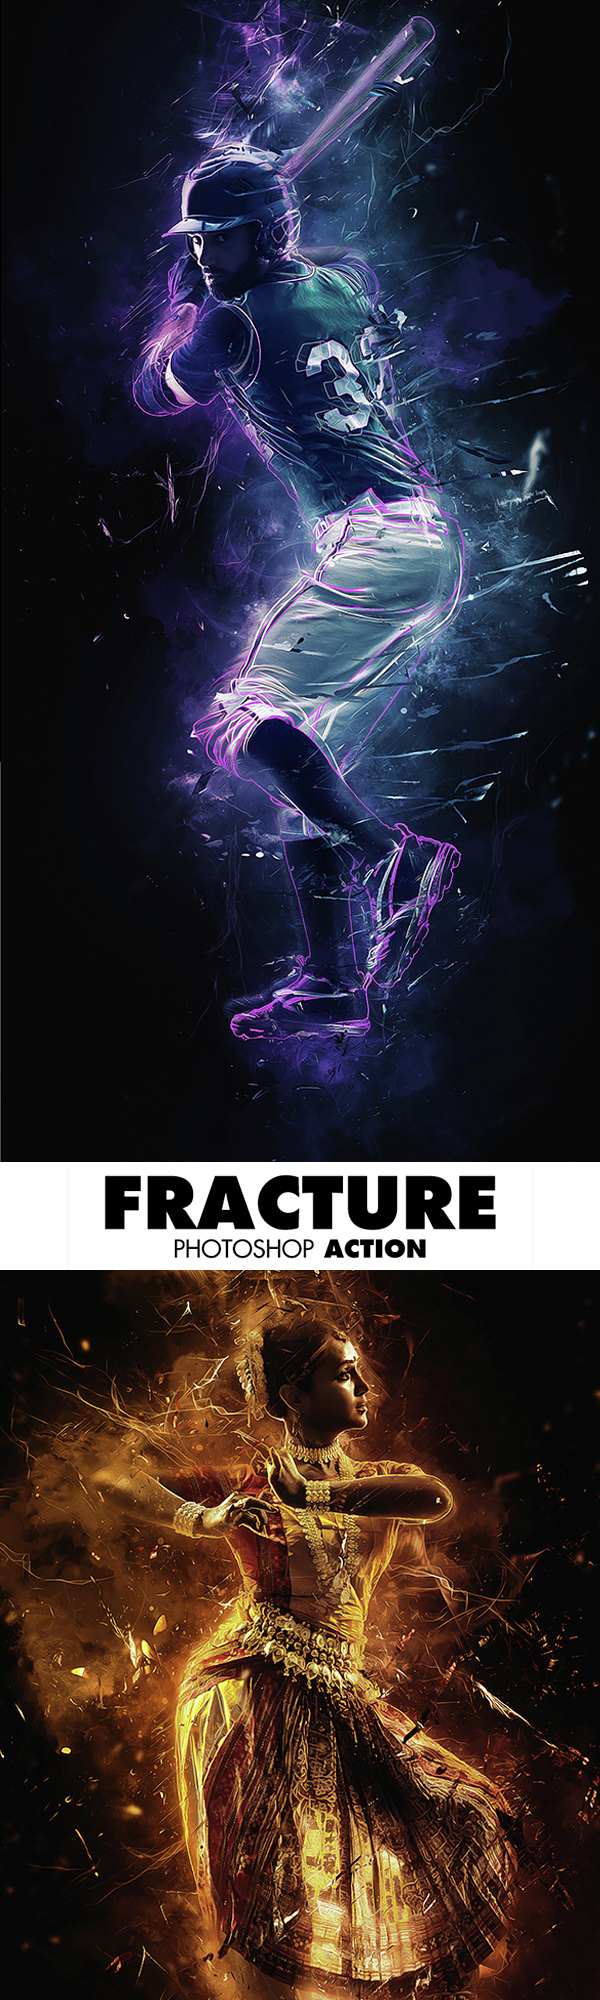 Fracture Photoshop Action